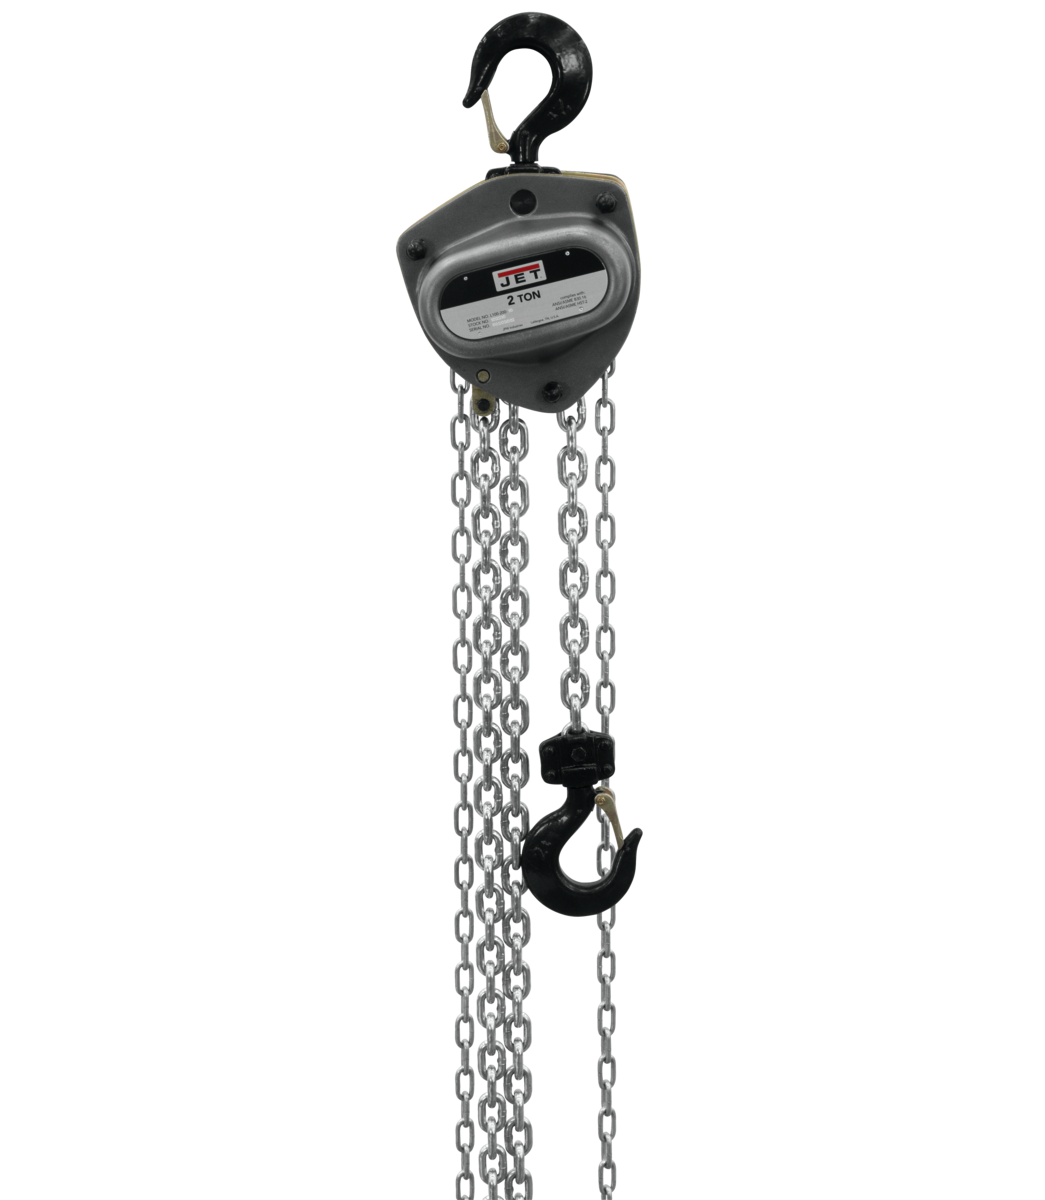 L-100-200WO-20, 2-Ton Hand Chain Hoist With 20' Lift & Overload Protection